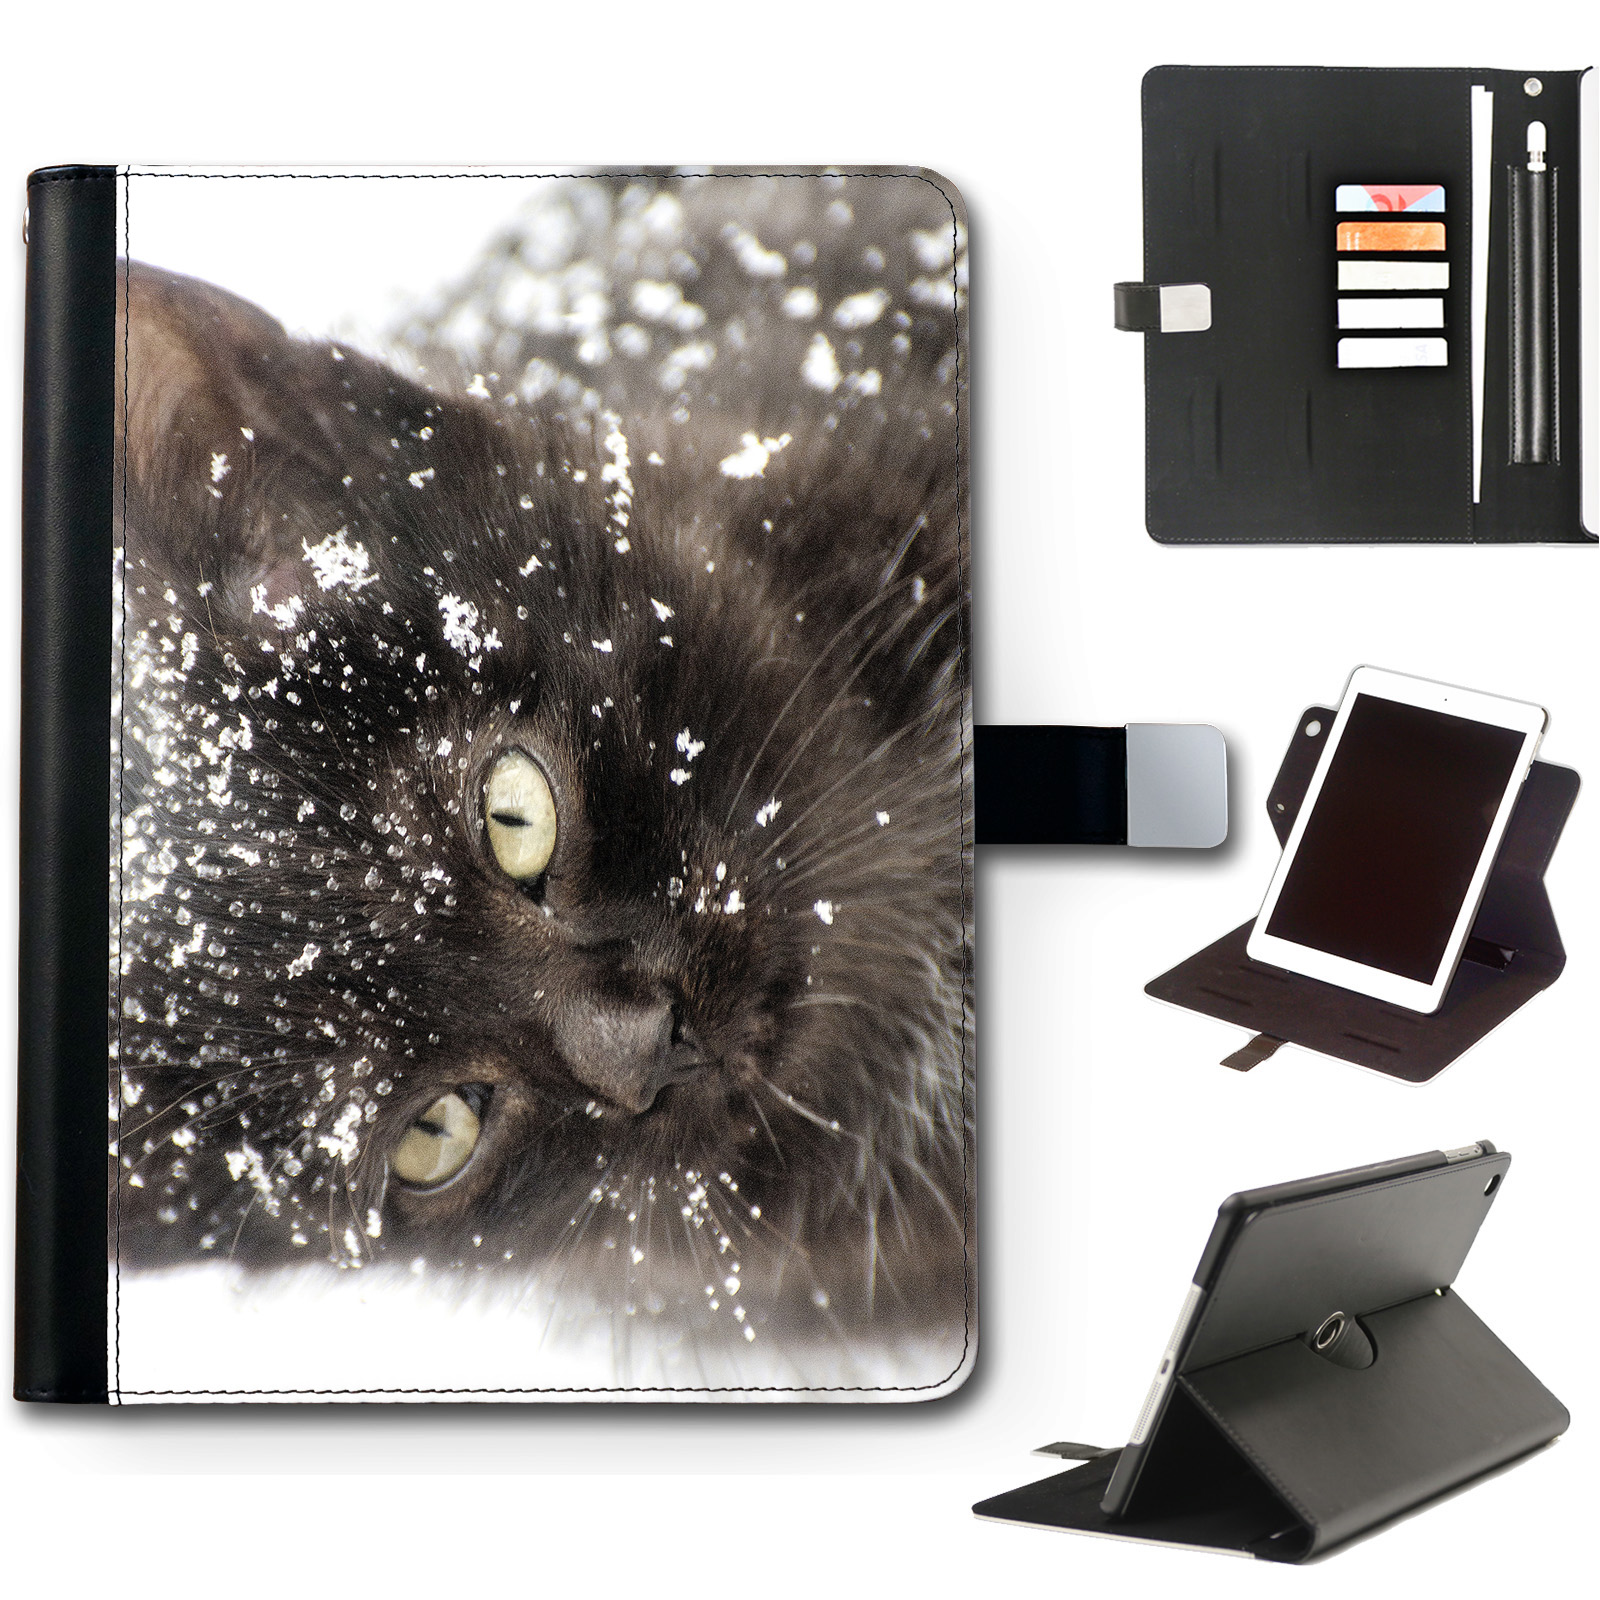 Cane-pelle-Caso-Ipad-360-Girevole-Cover-per-Apple-Ipad-con-Animali-Gatto-ECC